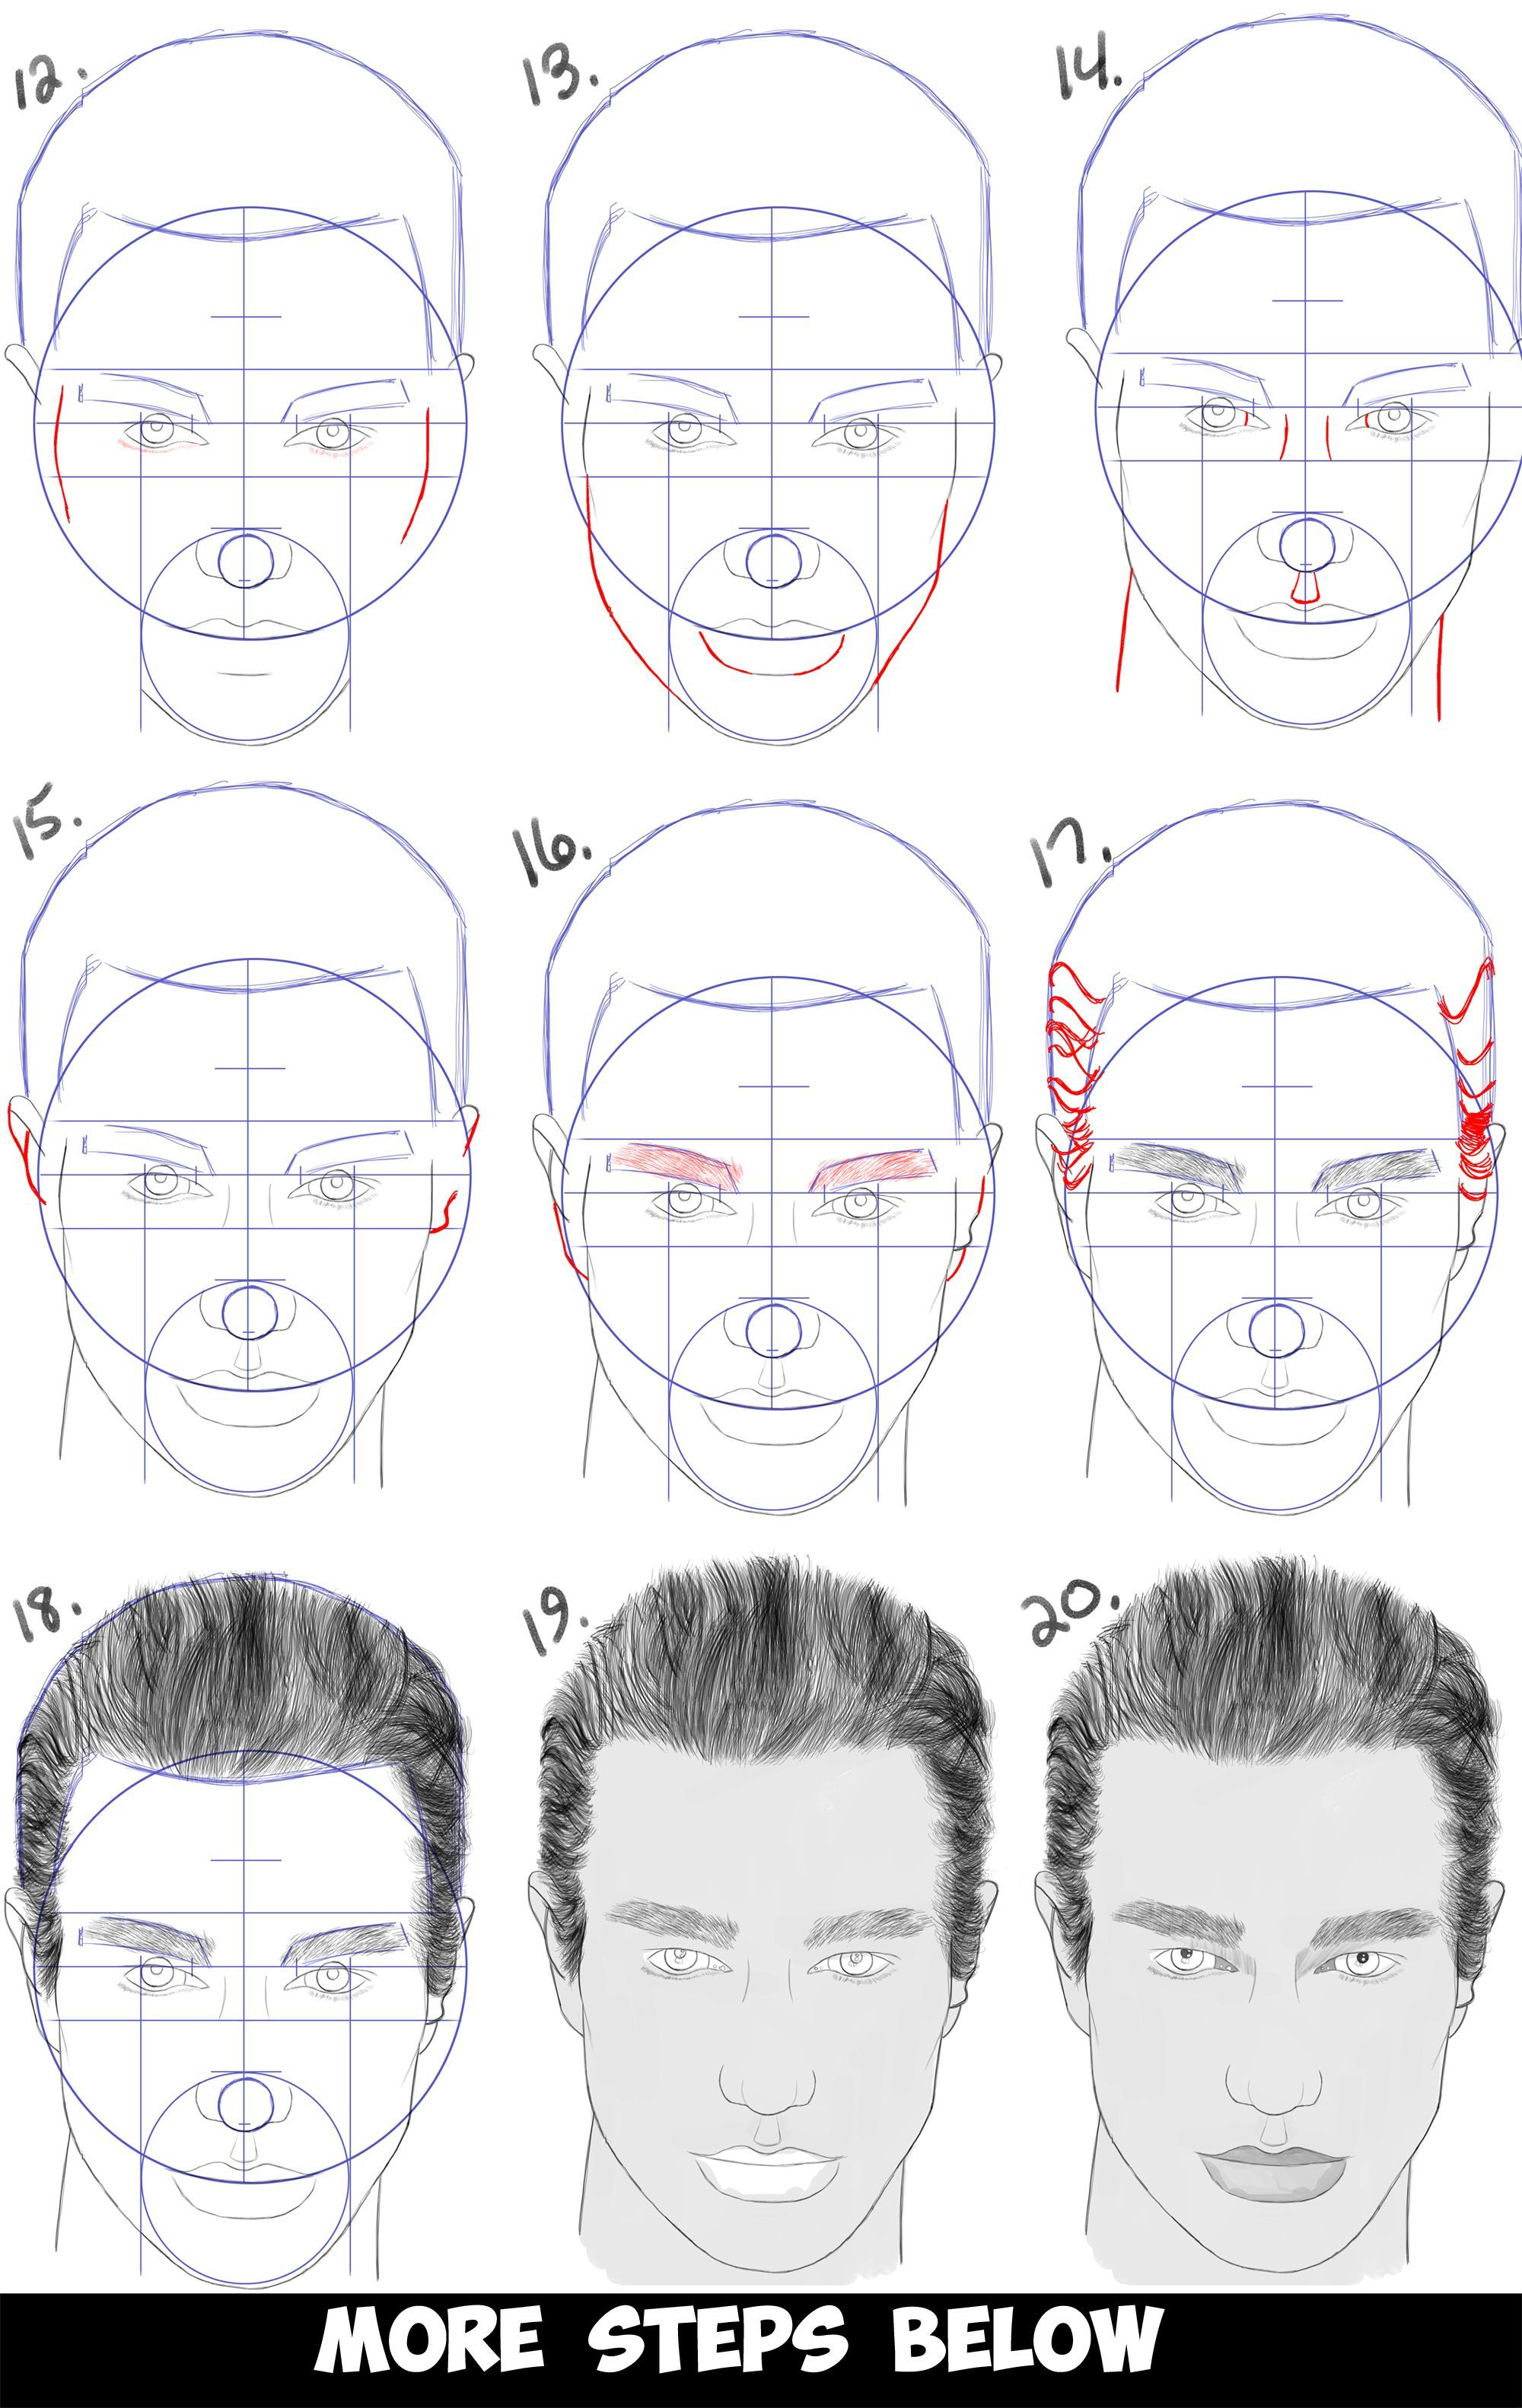 Learn How To Draw A Handsome Man S Face From The Front View Male Simple Steps Drawing Lesson For Beginners Male Face Drawing Tutorial Face Face Drawing